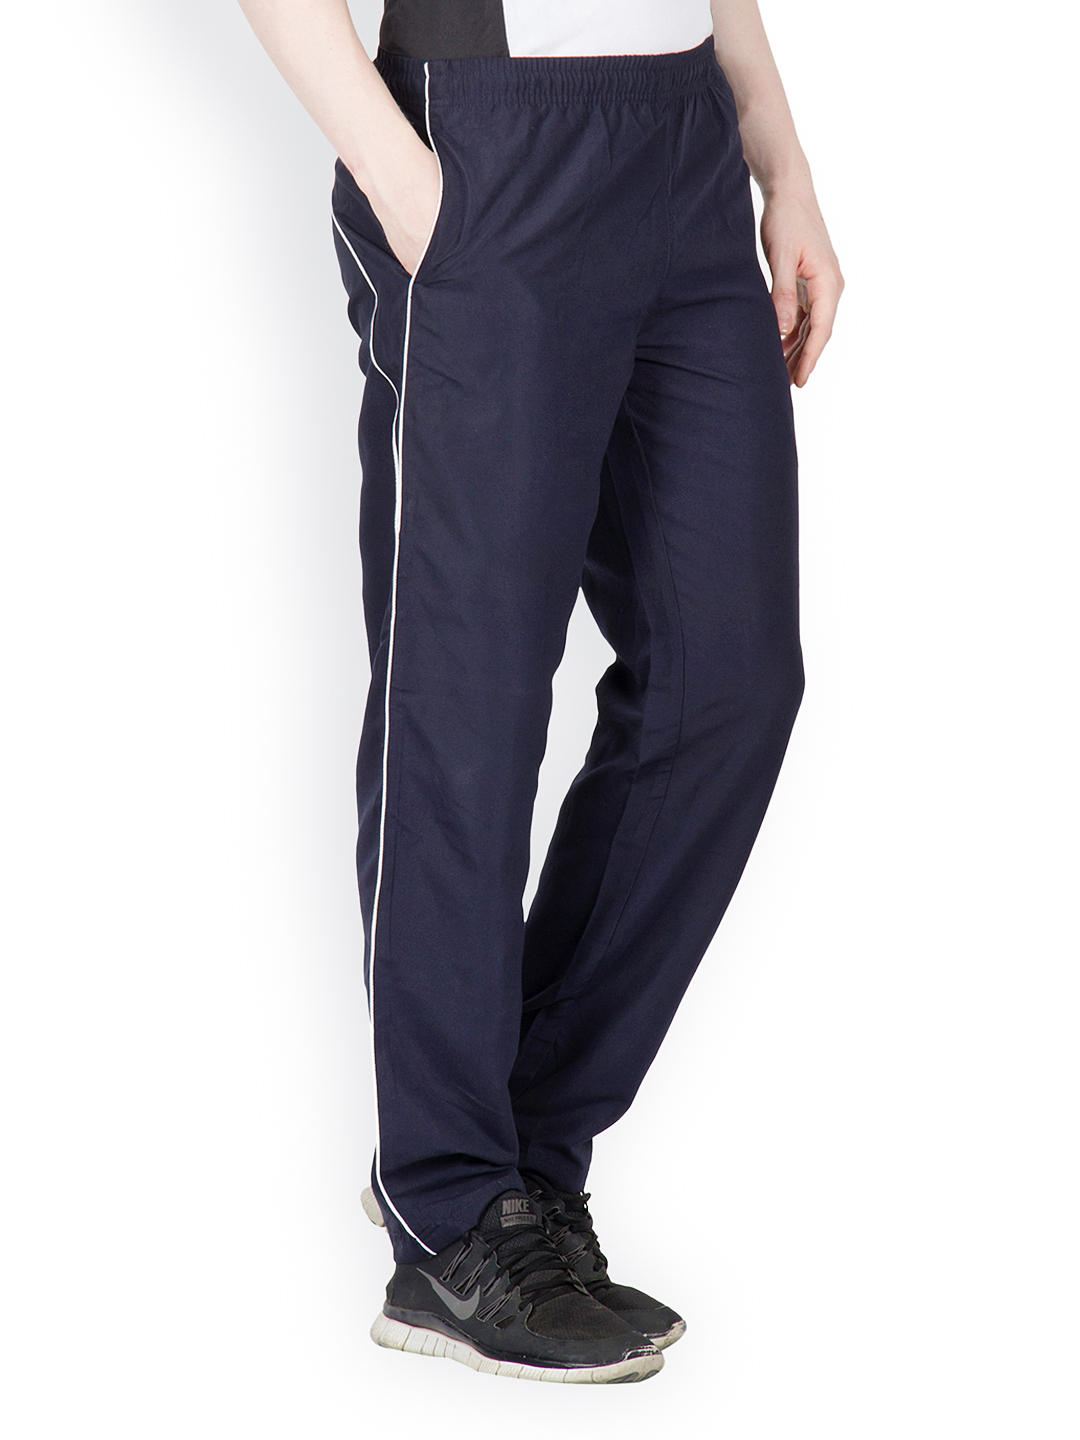 Myntra Dazzgear Men Navy Track Pants 480484 | Buy Myntra Dazzgear Track Pants at best price ...